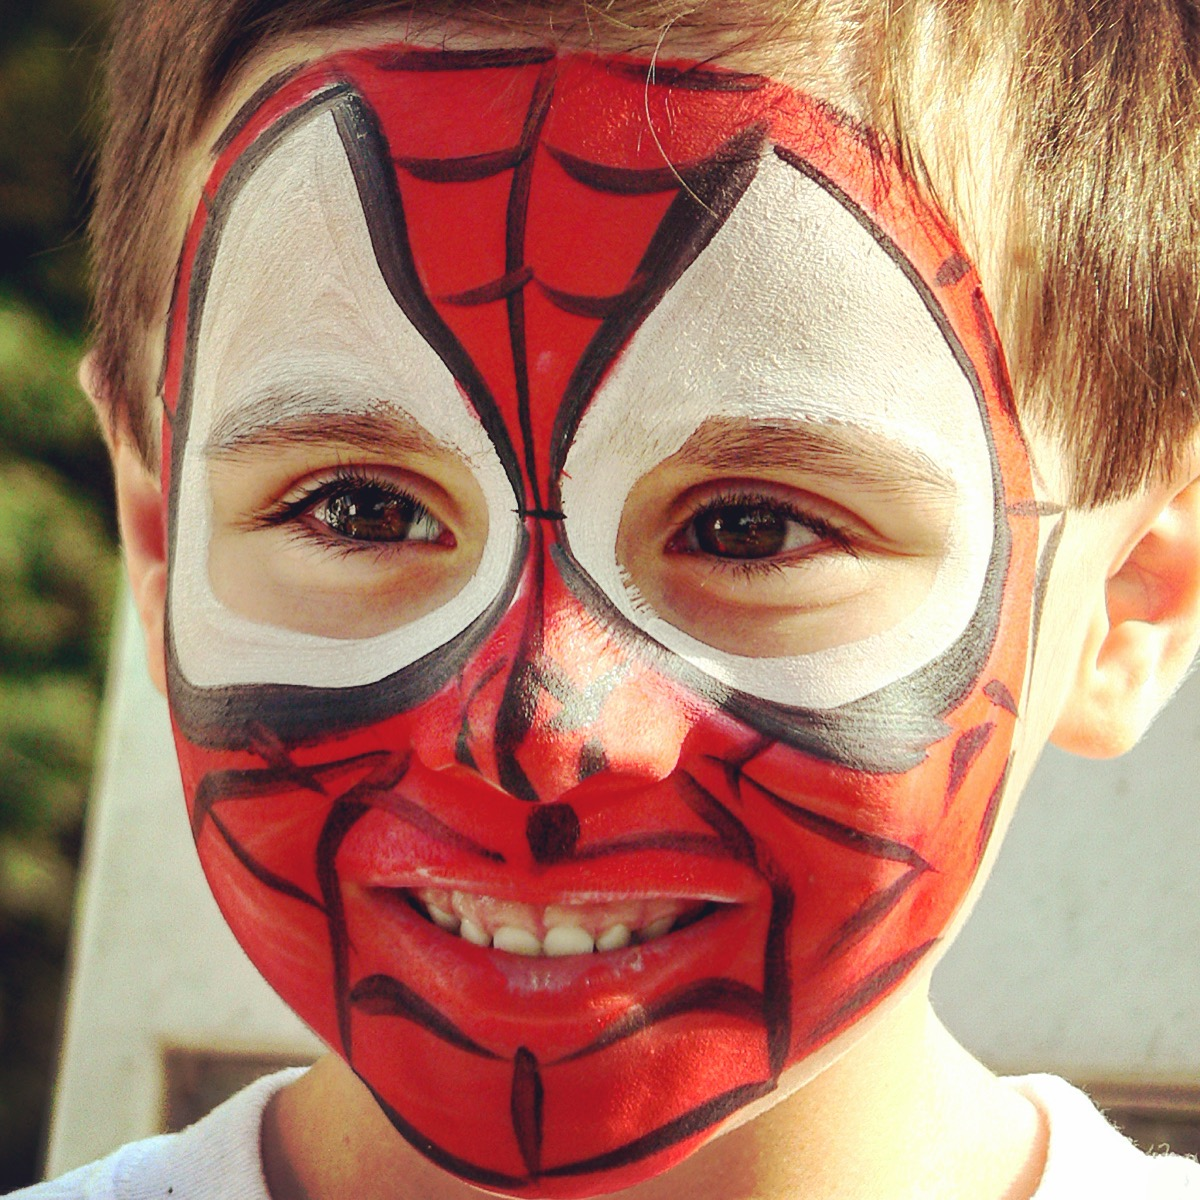 The 10 Best Face Painters For Kids Party in Norwalk, CT 2019